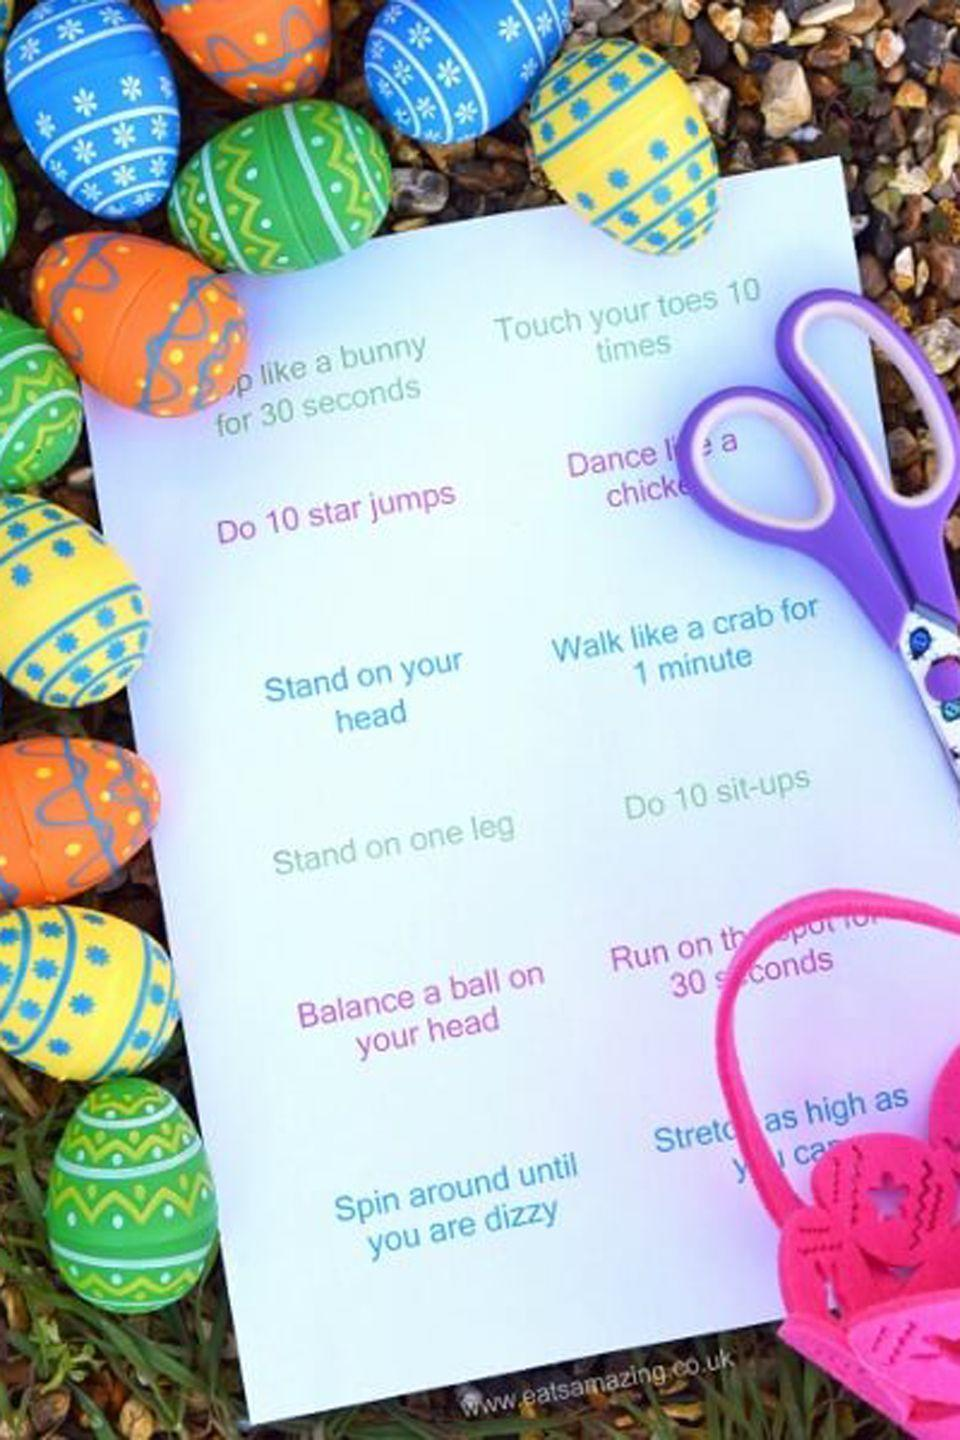 "<p>If you're looking for a healthier alternative to sugar-packed treats, use these written challenges to stuff eggs with and then let kids loose following the egg hunt.</p><p><strong>Get the tutorial at <a href=""http://www.eatsamazing.co.uk/inedible-fun/fun-energy-burning-easter-egg-hunt"" rel=""nofollow noopener"" target=""_blank"" data-ylk=""slk:Eats Amazing"" class=""link rapid-noclick-resp"">Eats Amazing</a>.</strong></p>"